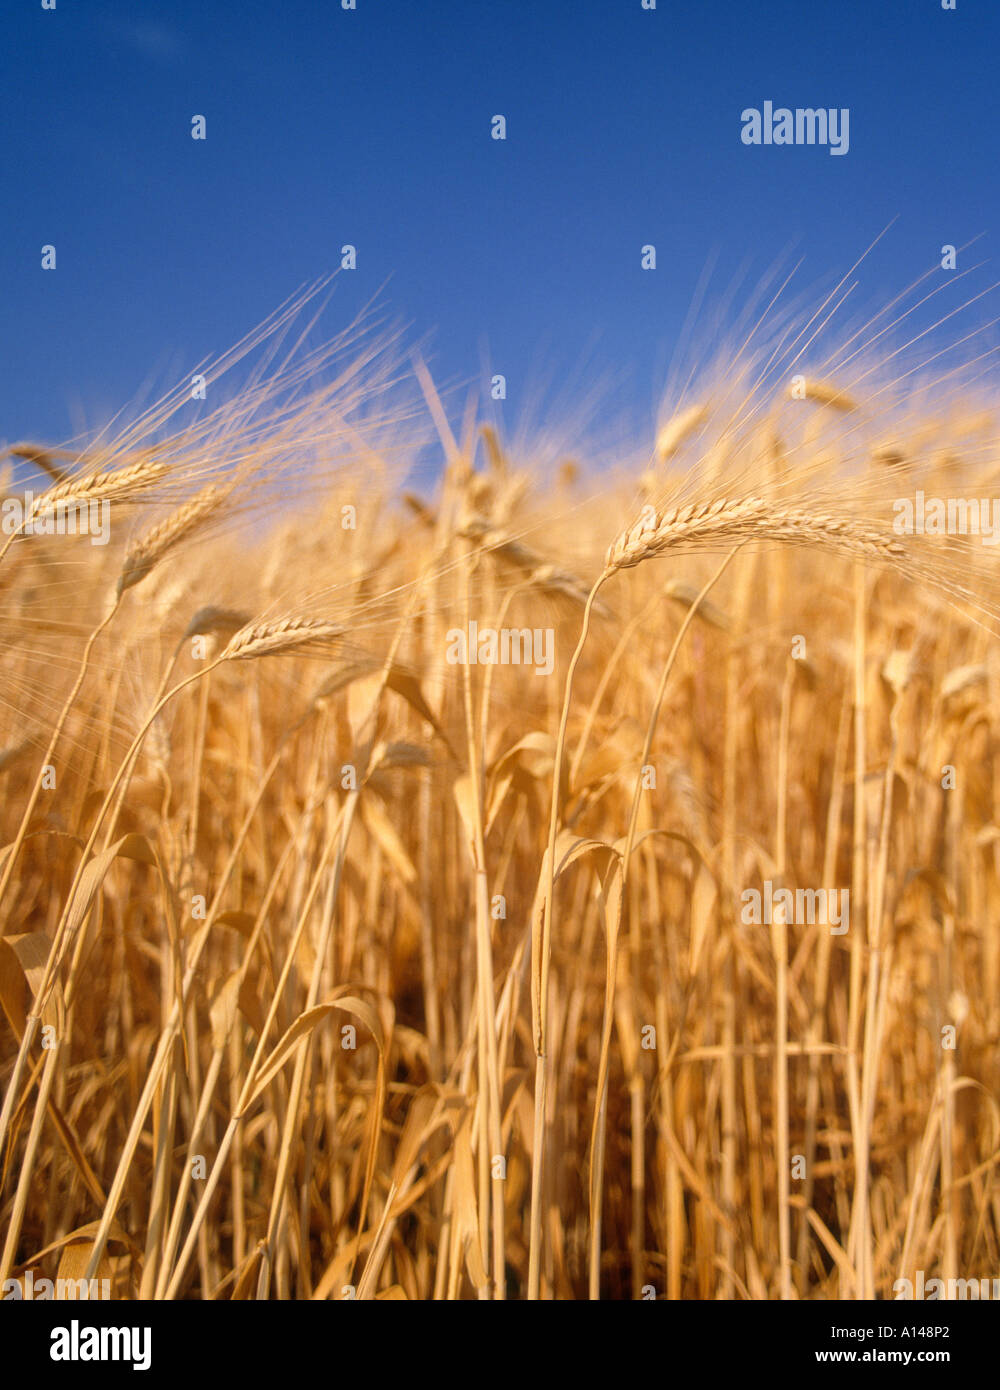 Wheat in wheatfield - Stock Image